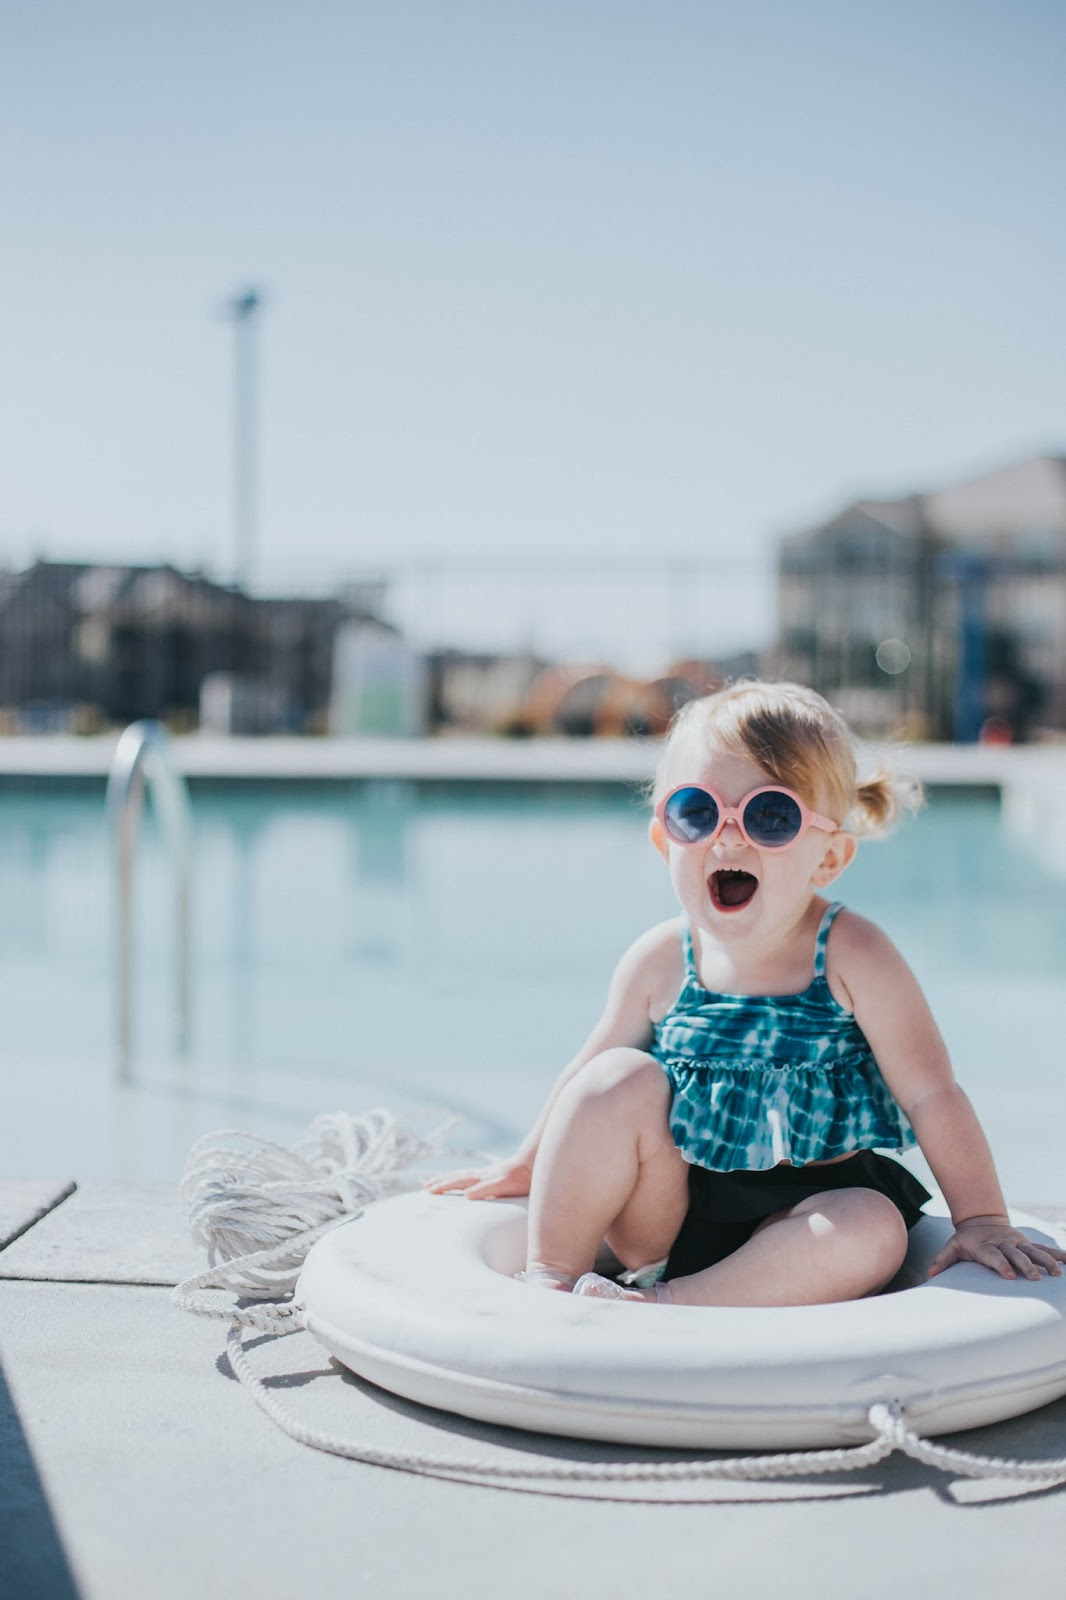 Baby Swim Suit, Baby Sunglasses, Happy Baby